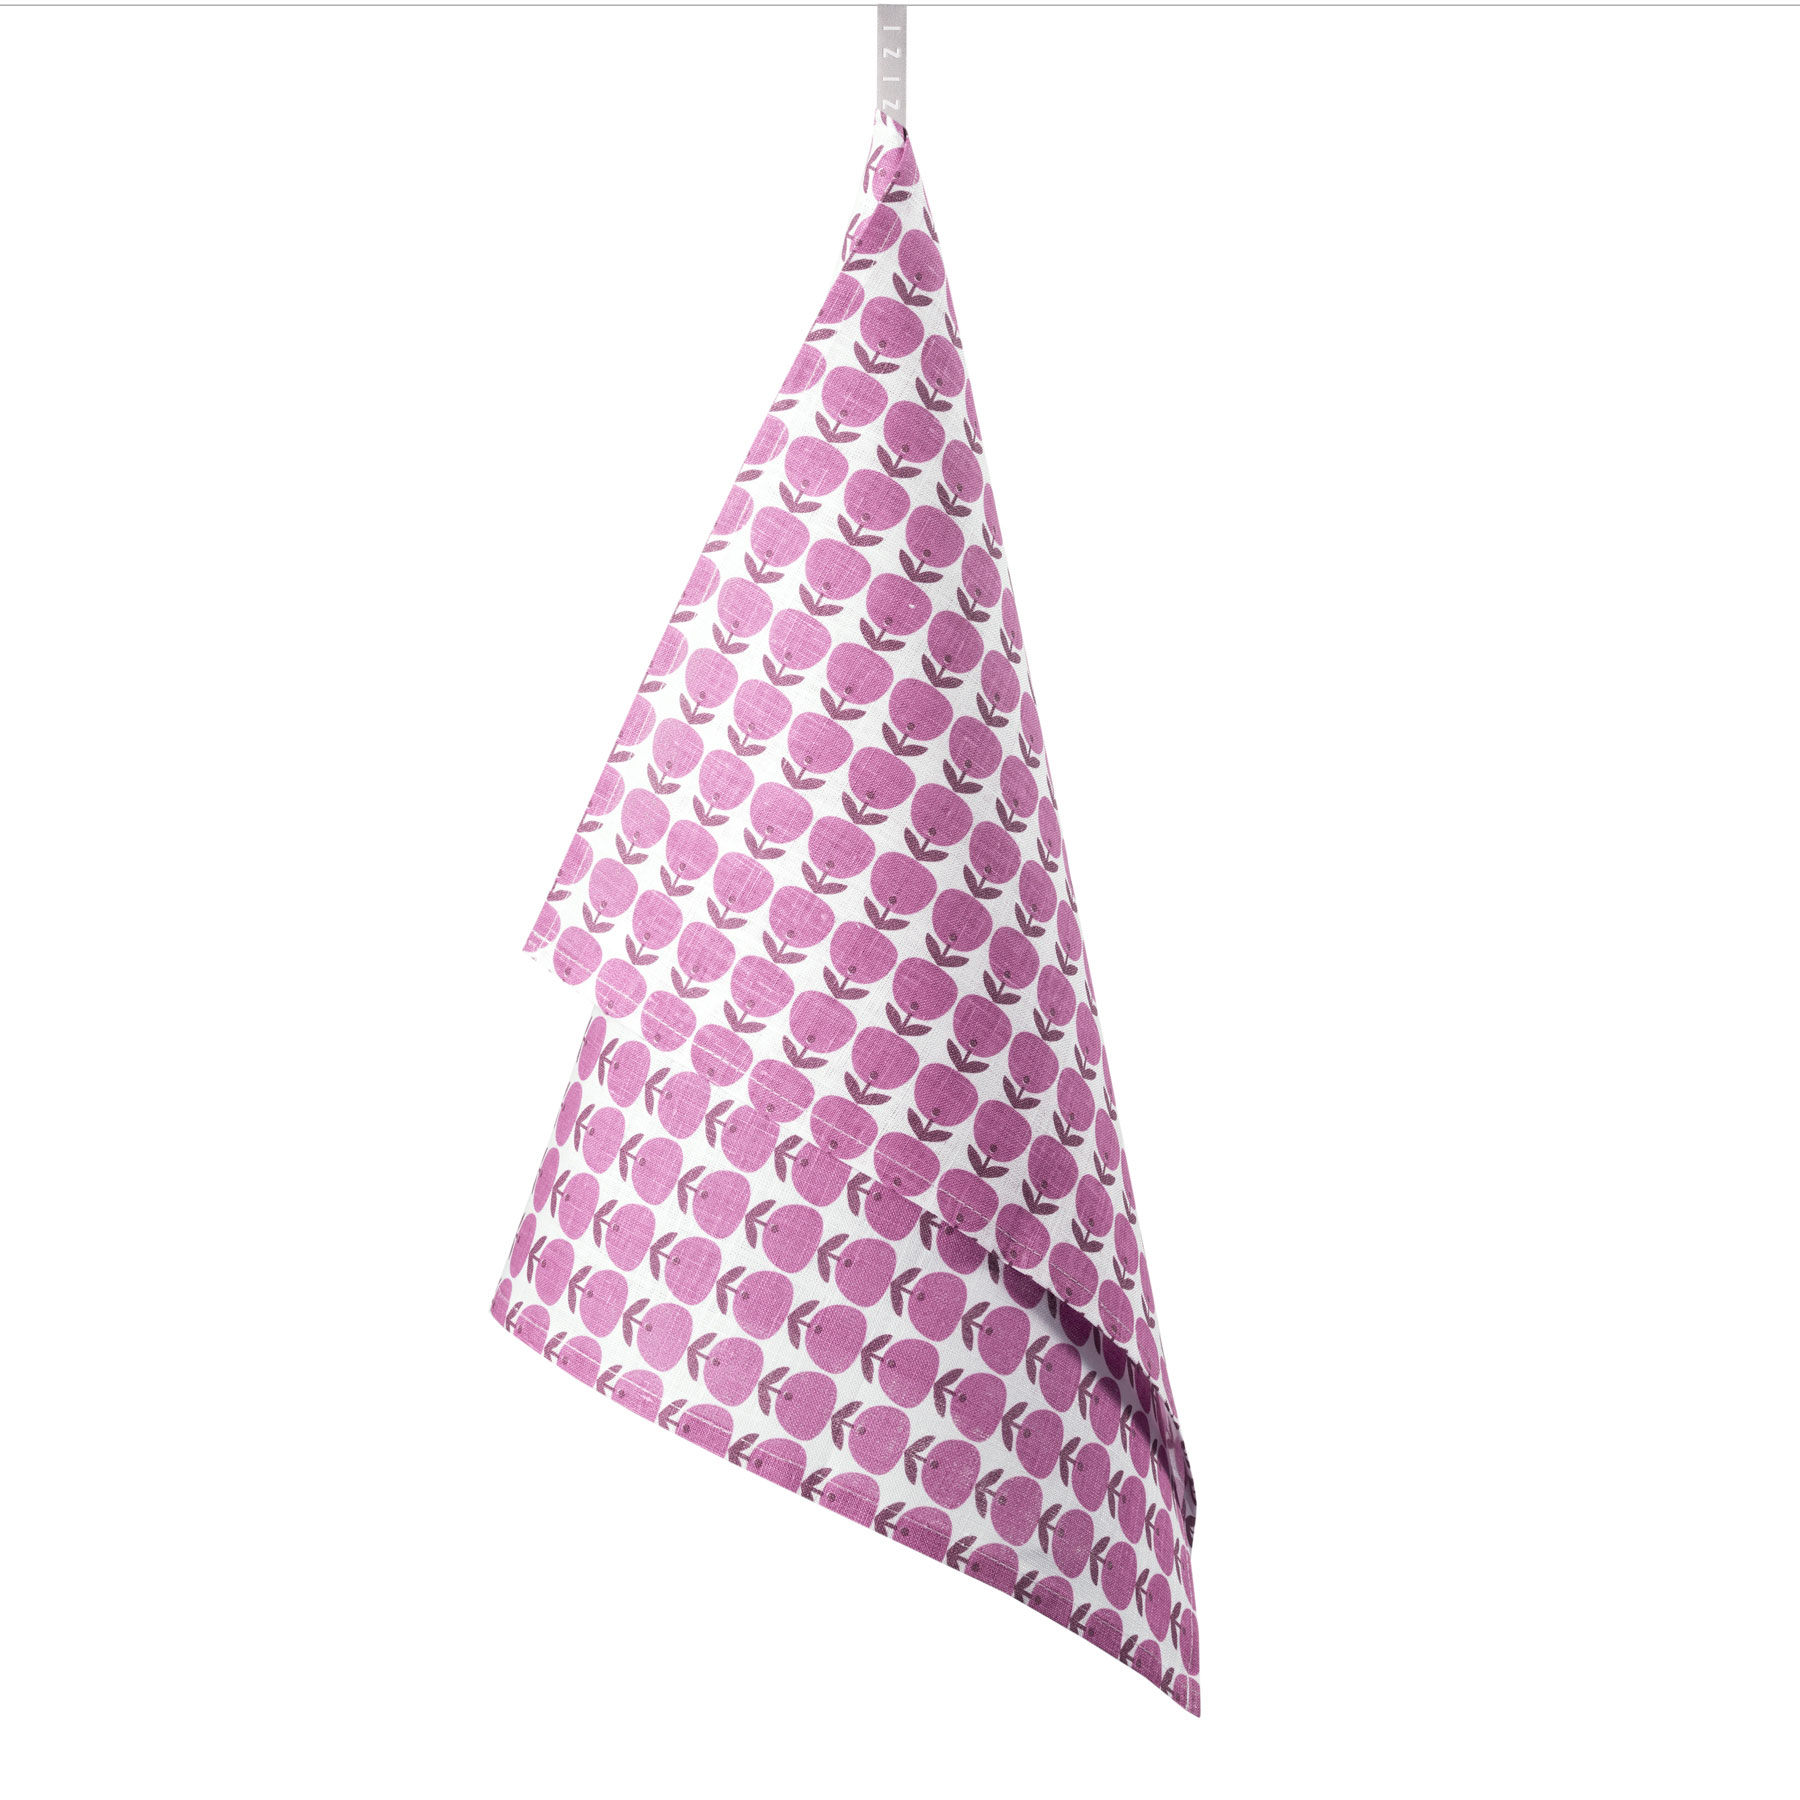 TEA TOWEL APPLE <br />pink